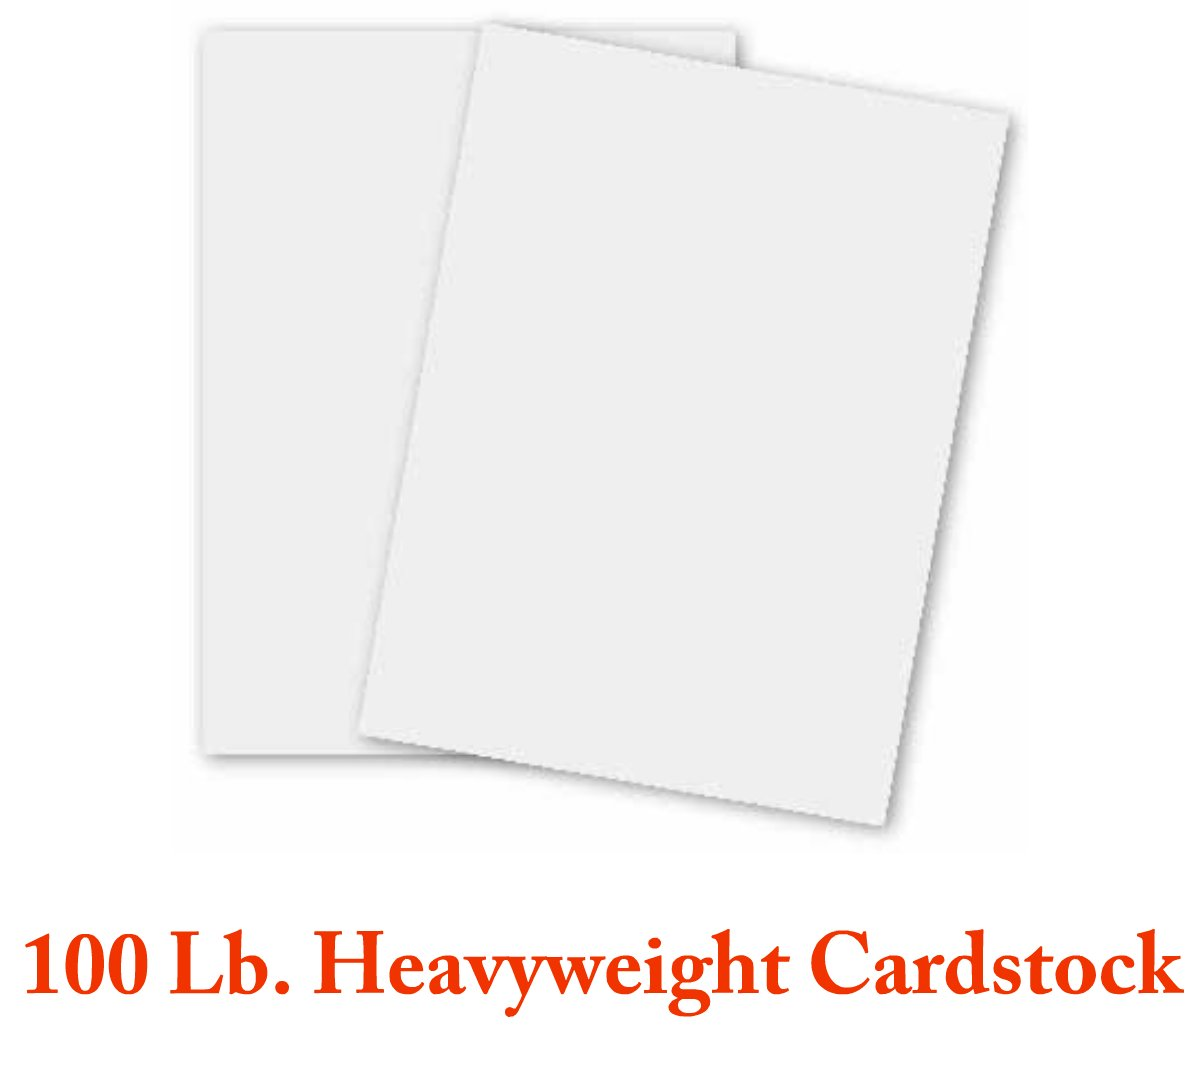 Flesh colored cardstock - White Card Stock Heavyweight 8 5 X 11 100lb Cover 270gsm 50 Sheets